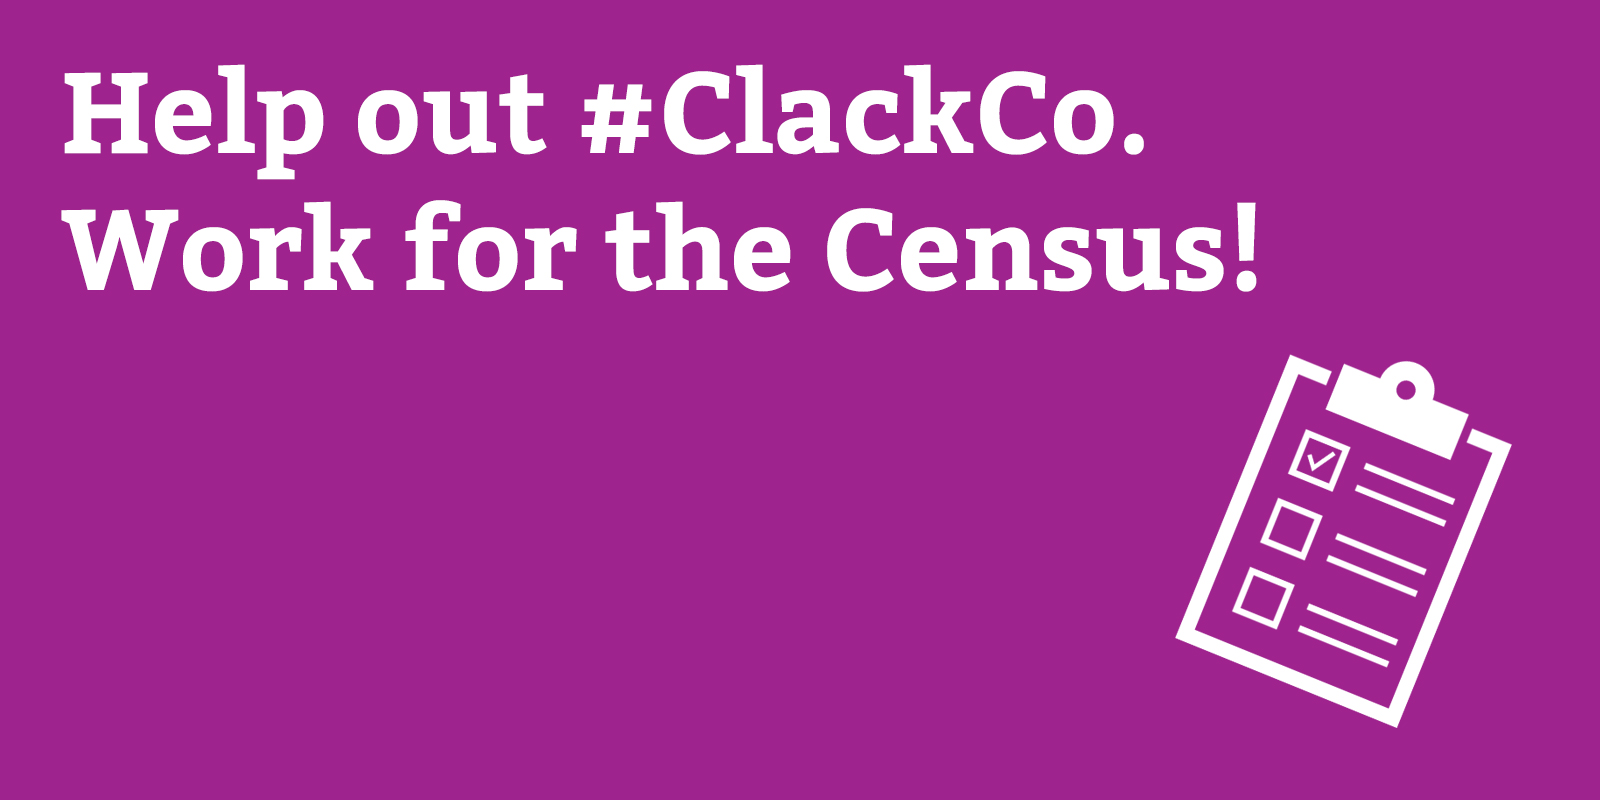 Help out #ClackCo. Work for the Census!